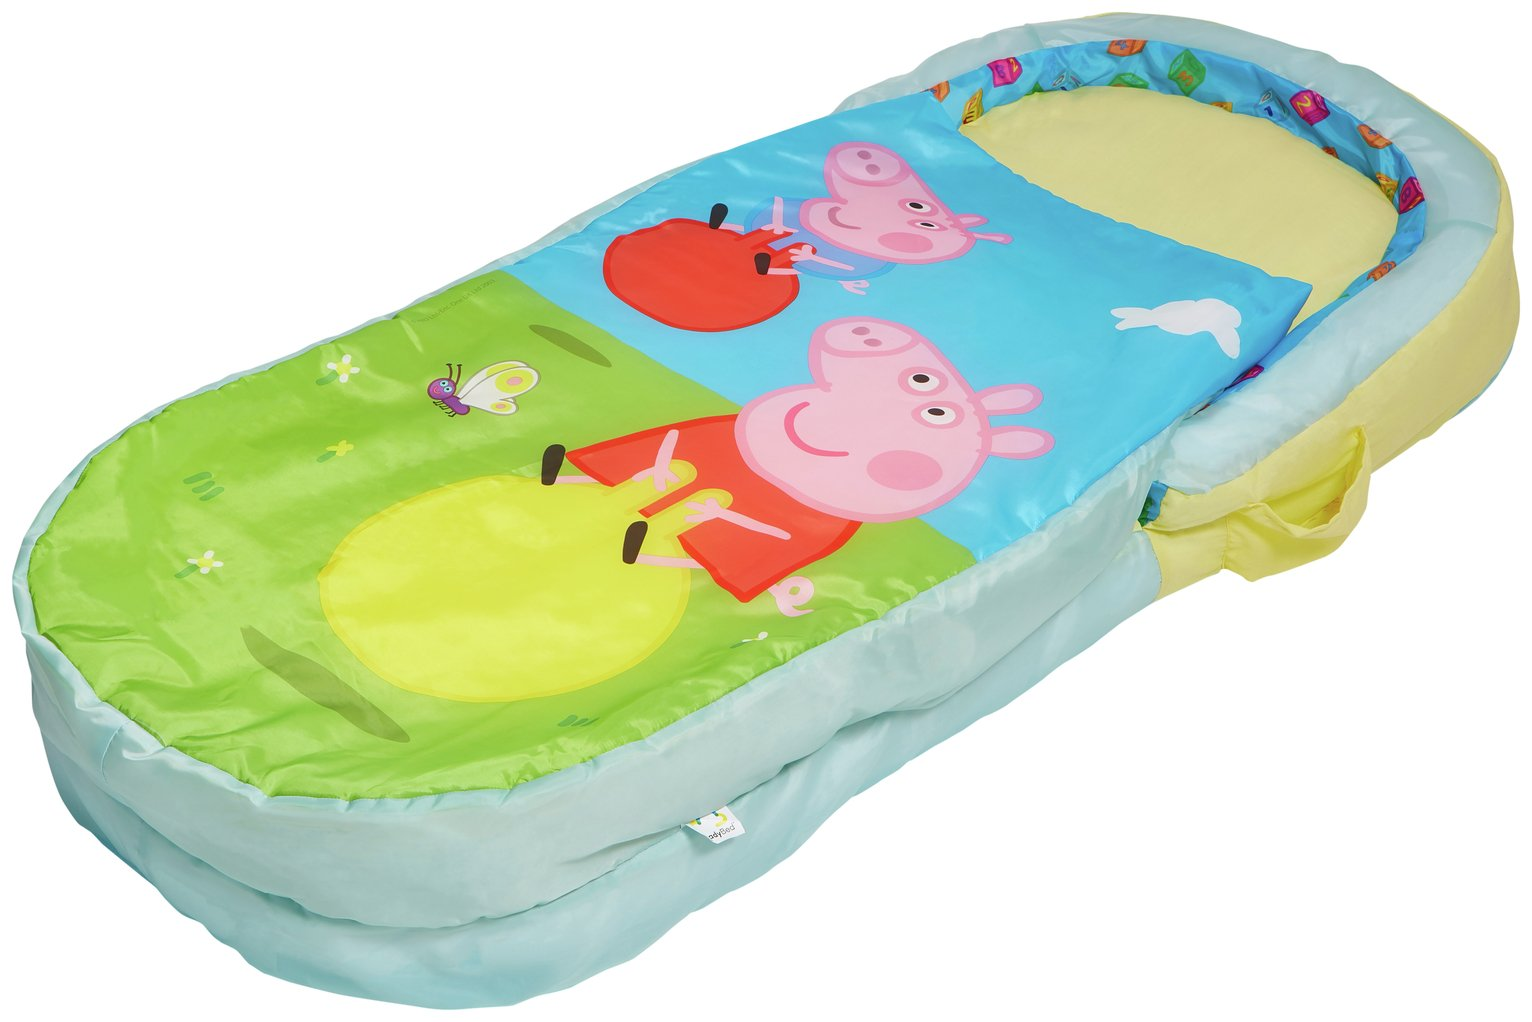 Results For Childrens Inflatable Beds